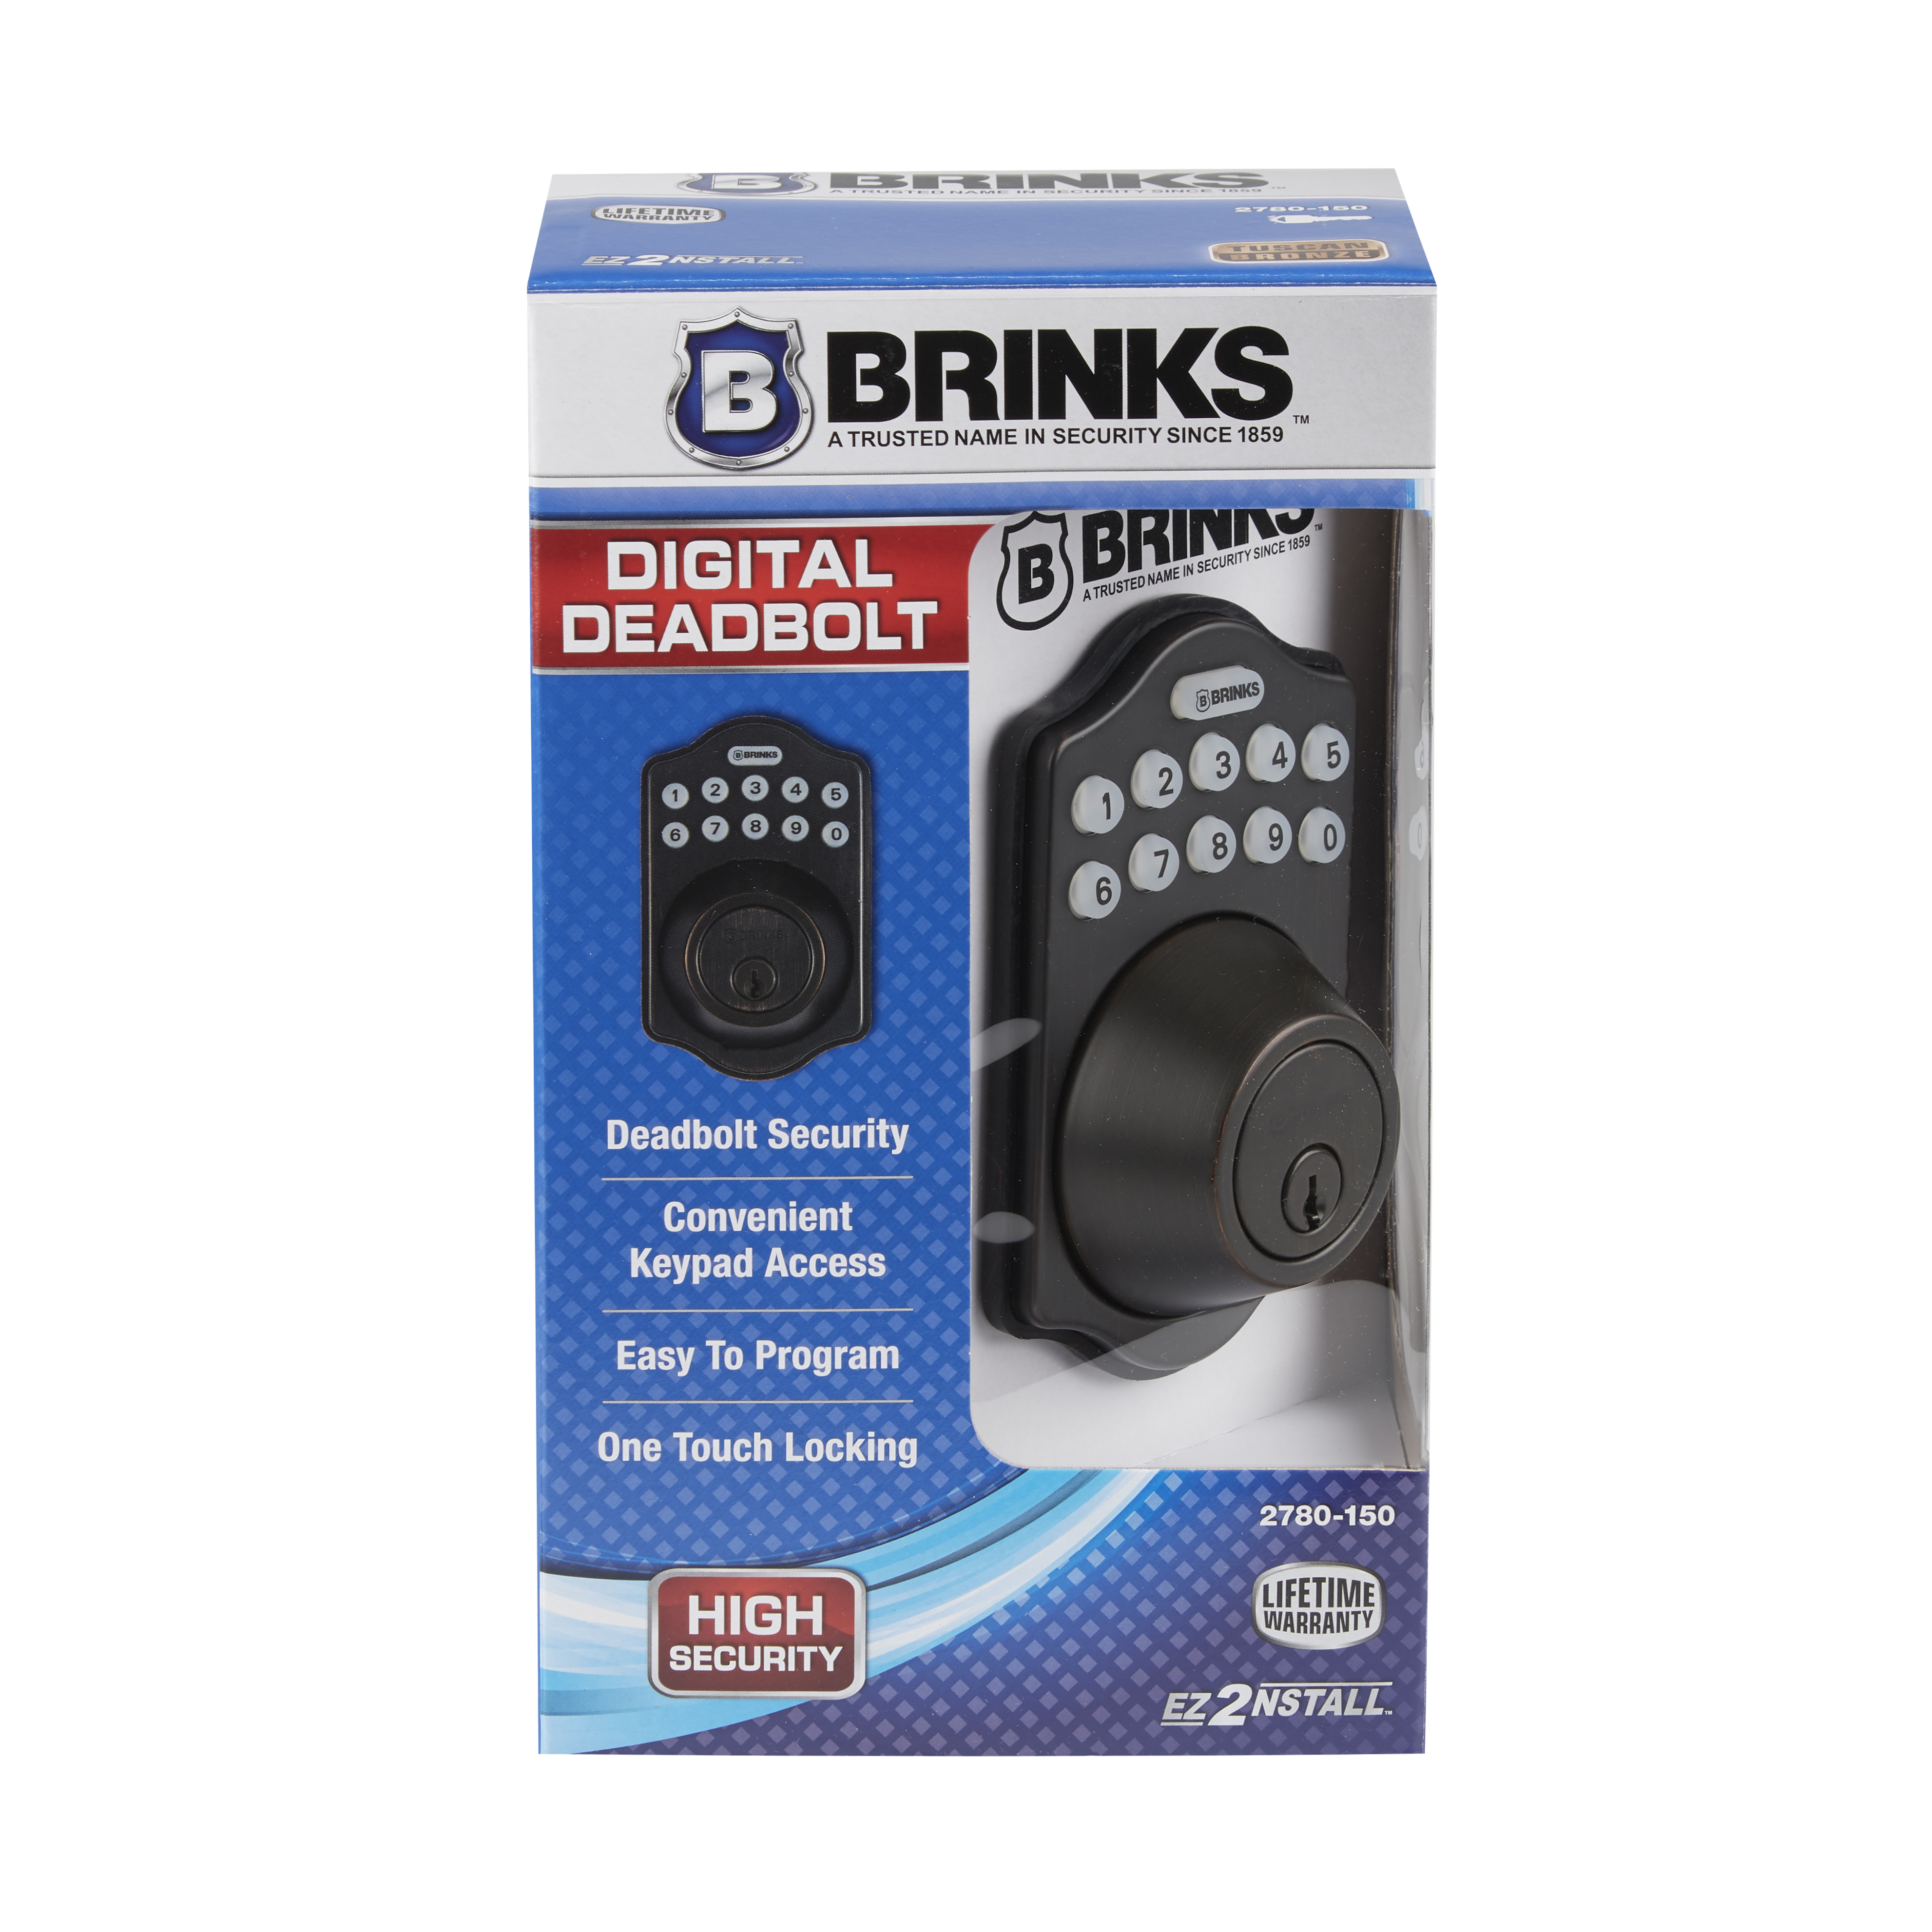 Brinks Digital Deadbolt Tb